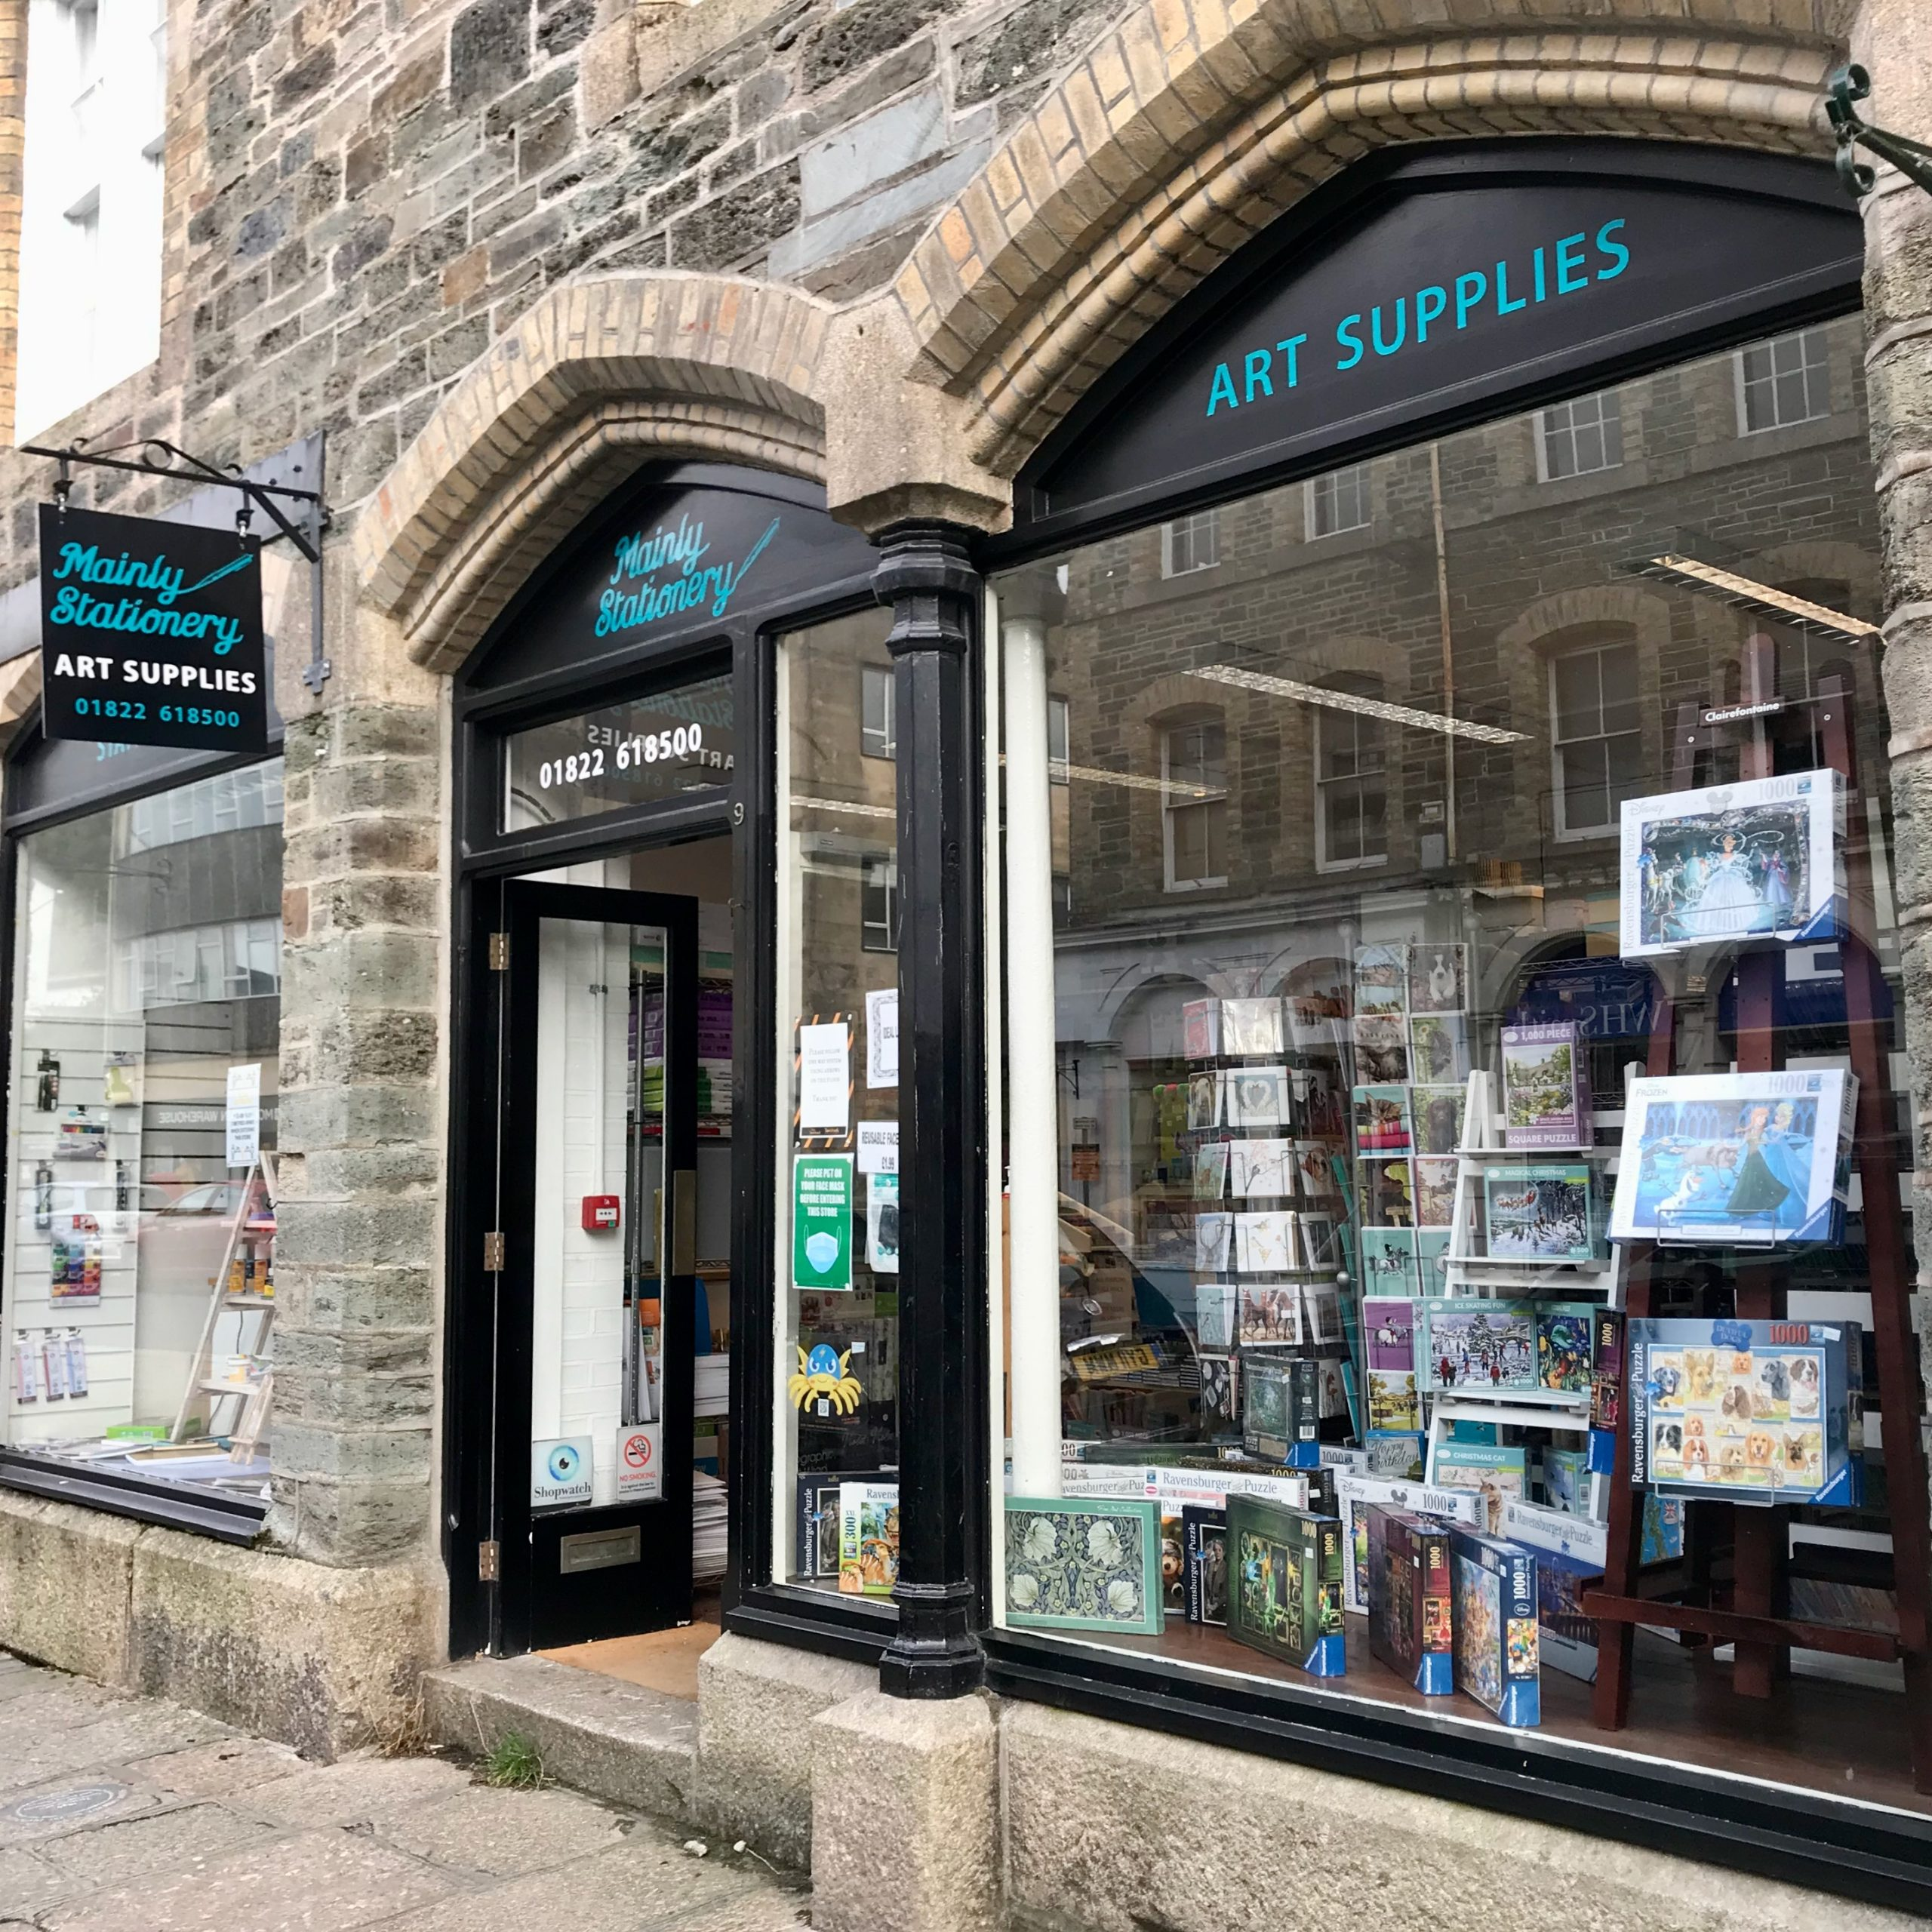 Shop front at Mainly Stationery